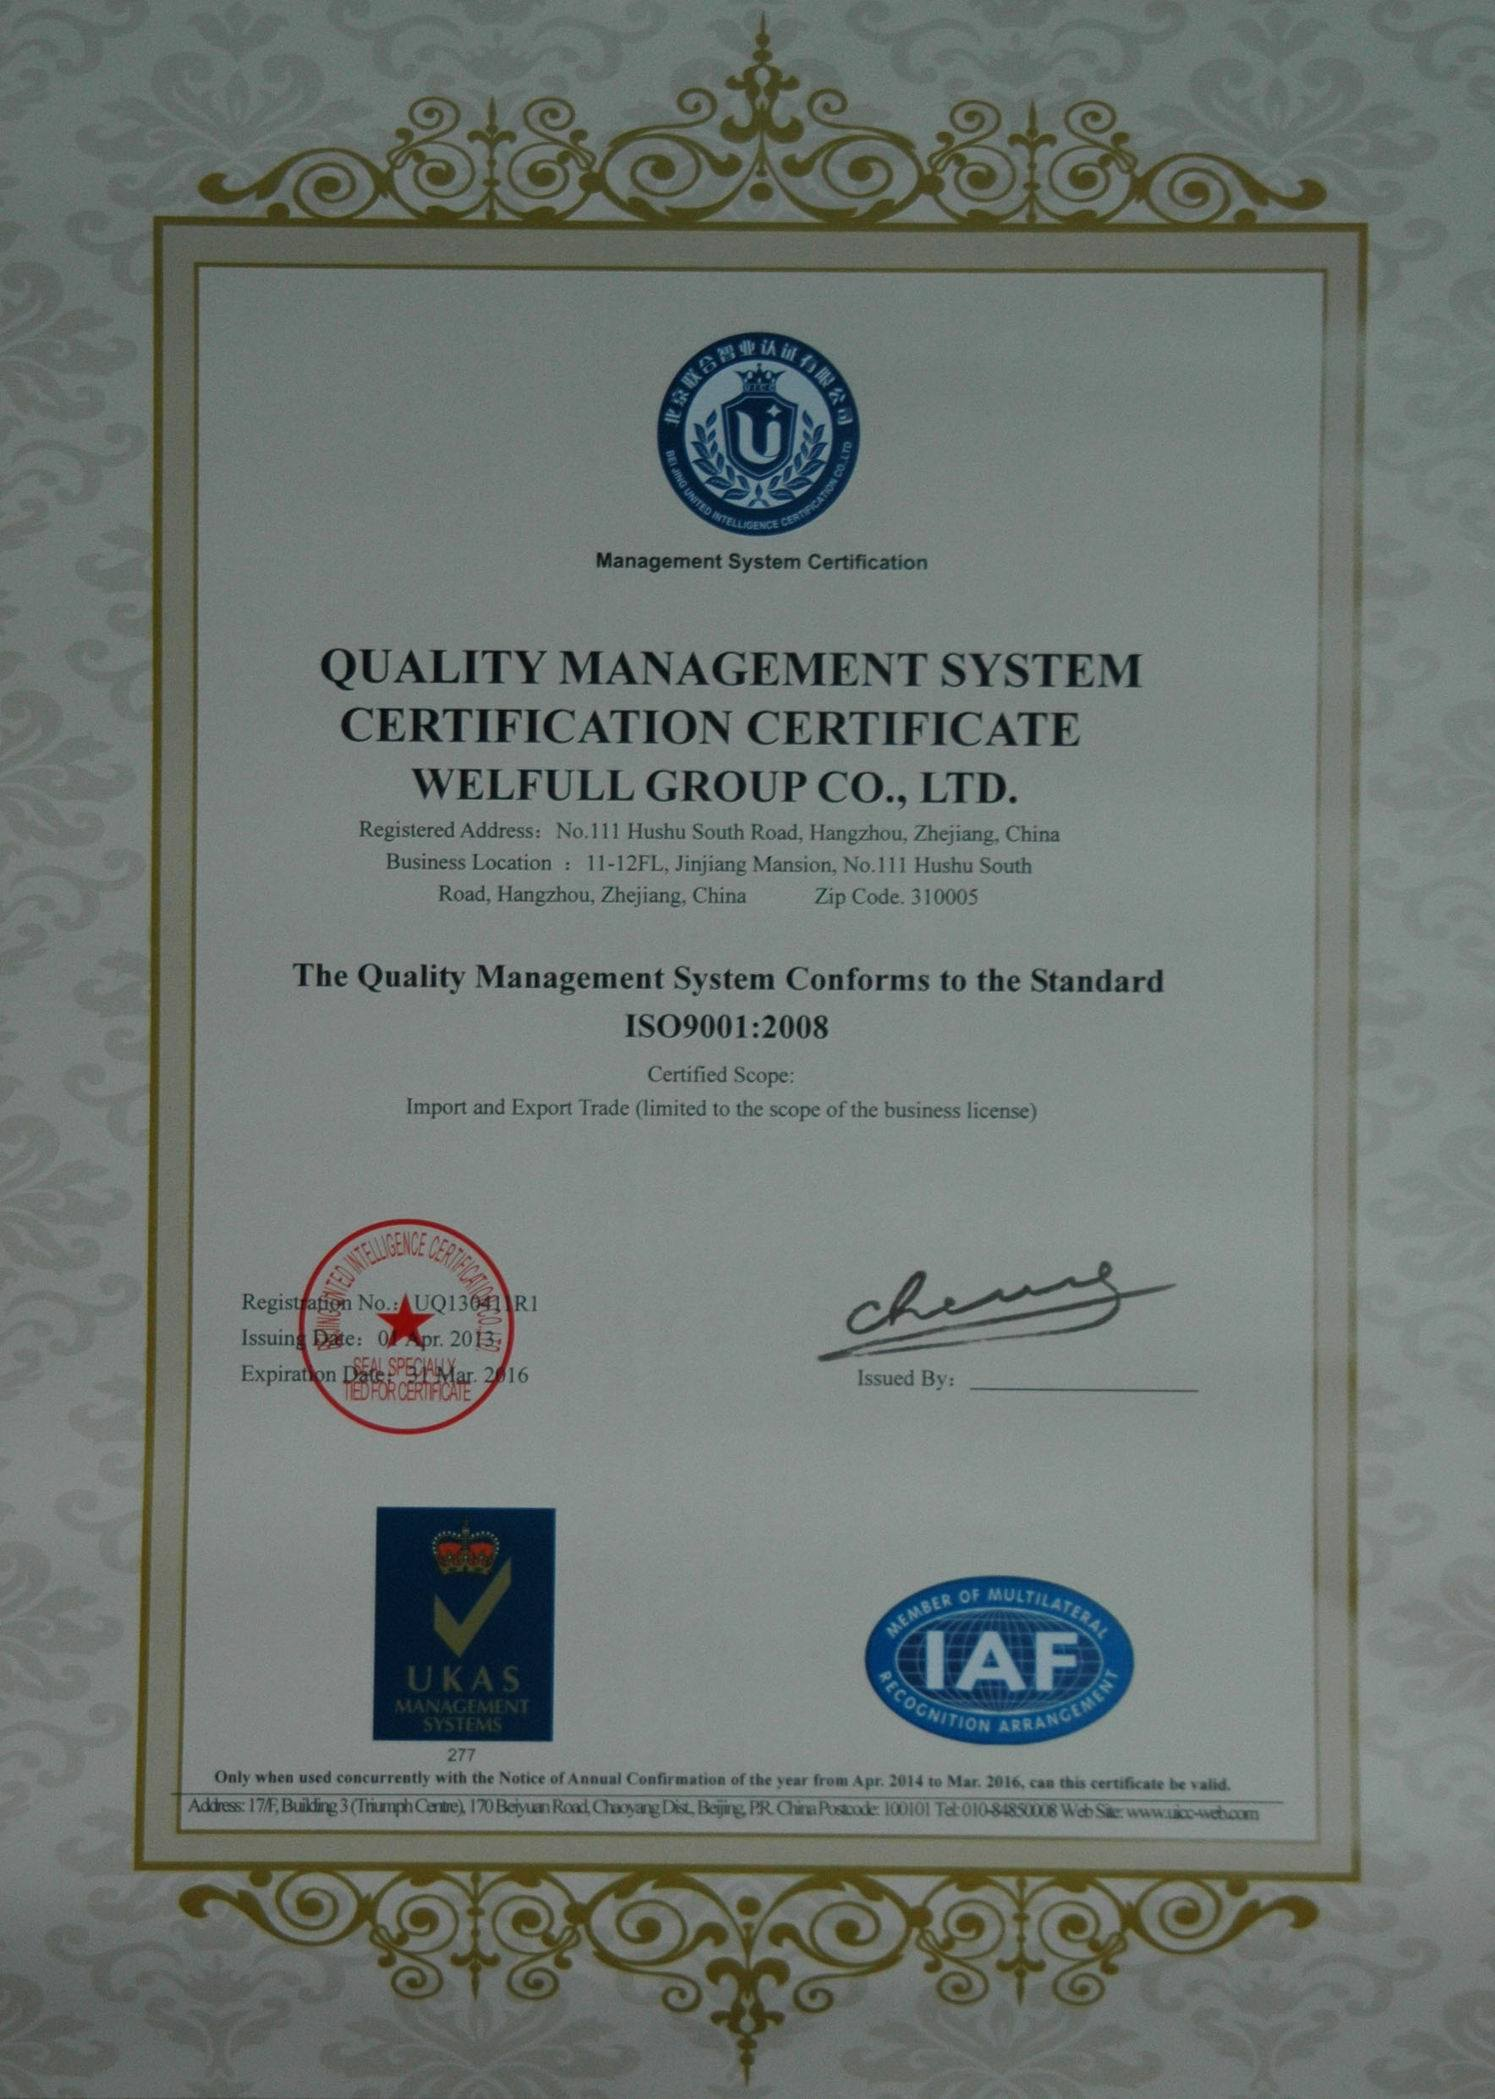 The Environmental Management System Certificate